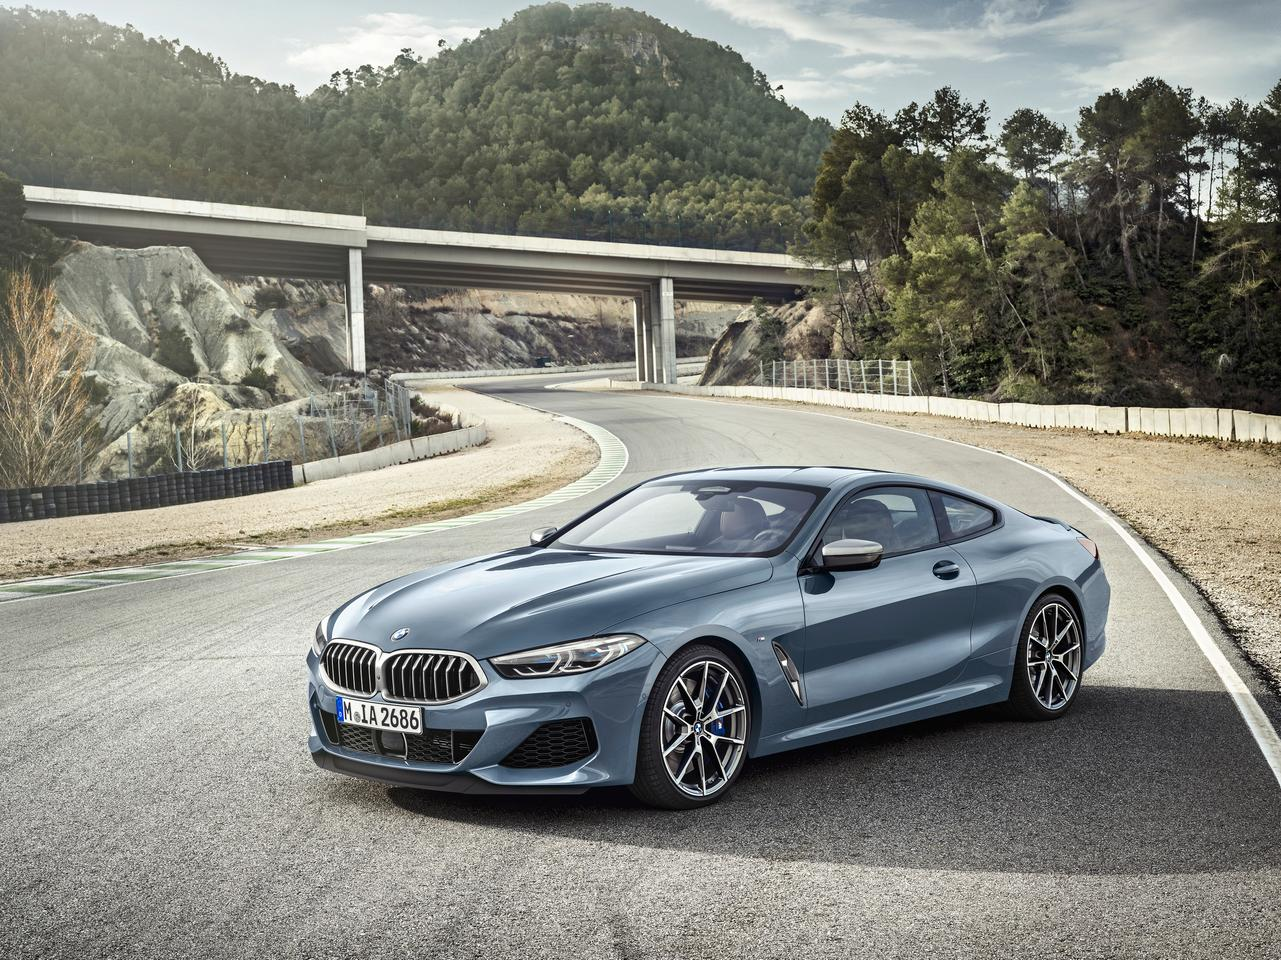 The production BMW 8 Series Coupe is a little less edgy than its conceptual was